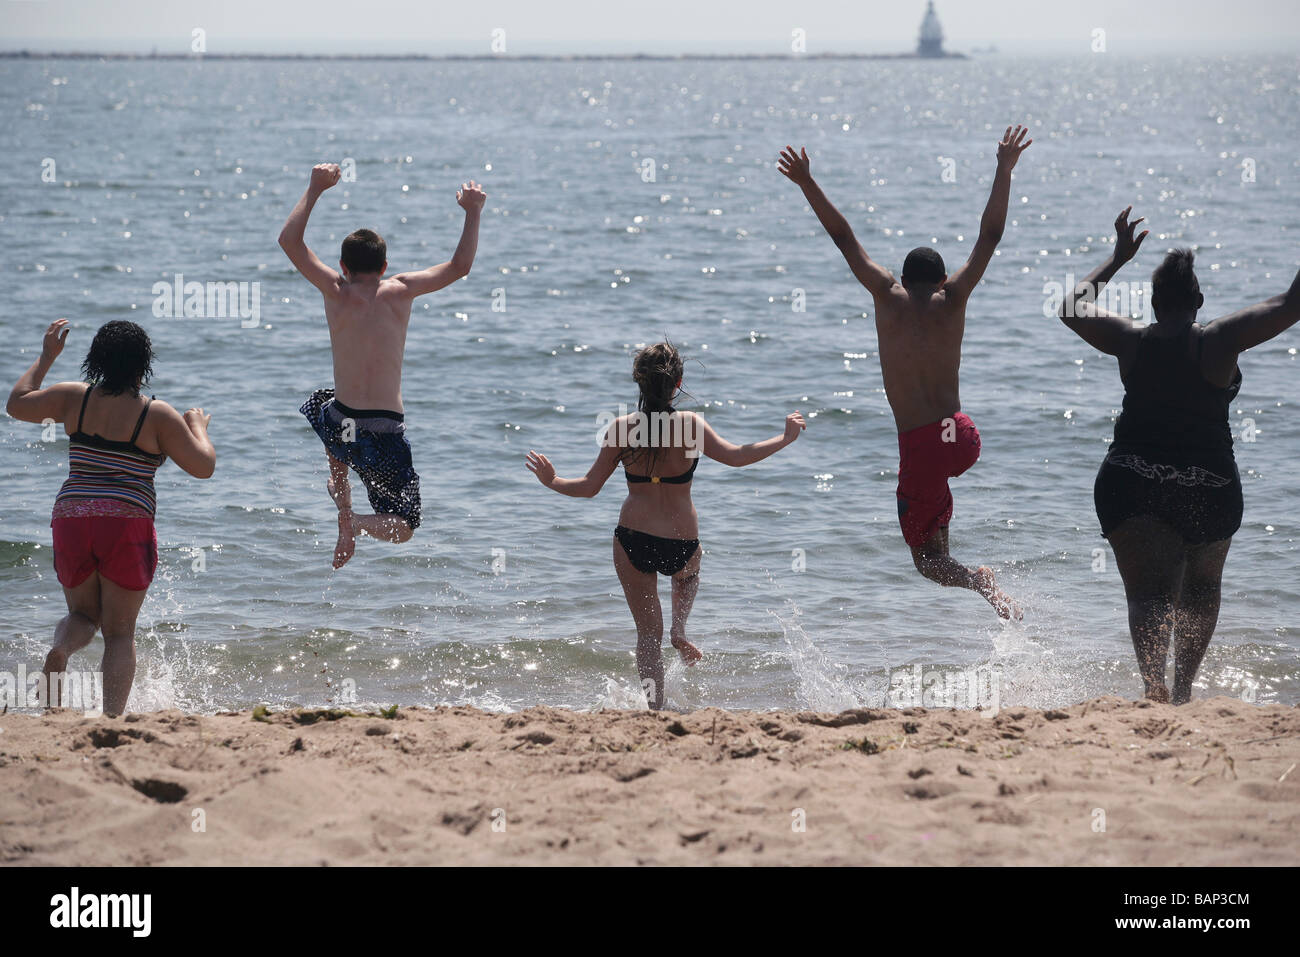 Five teenagers of different race and gender run and jump into the water on a hot summer day. - Stock Image